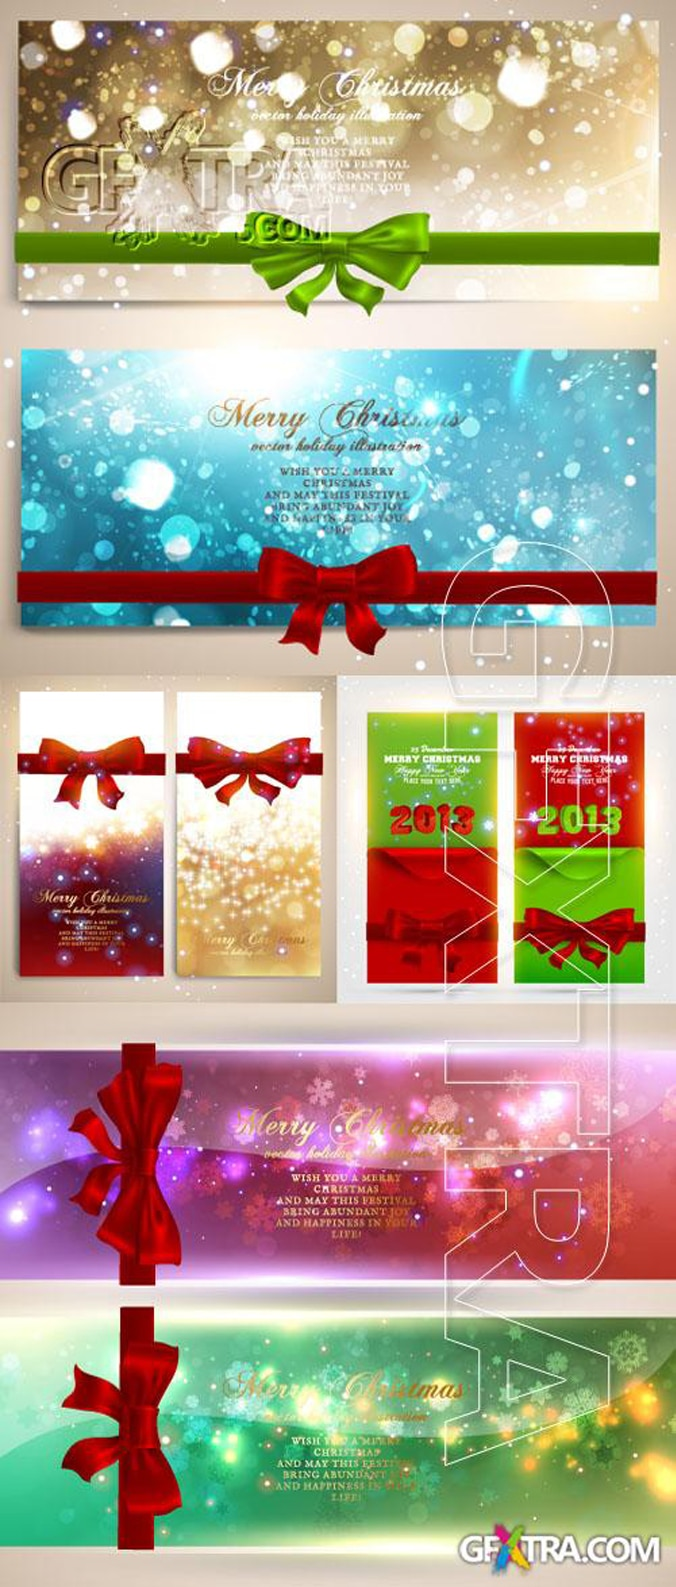 Christmas banners with ribbons and bows